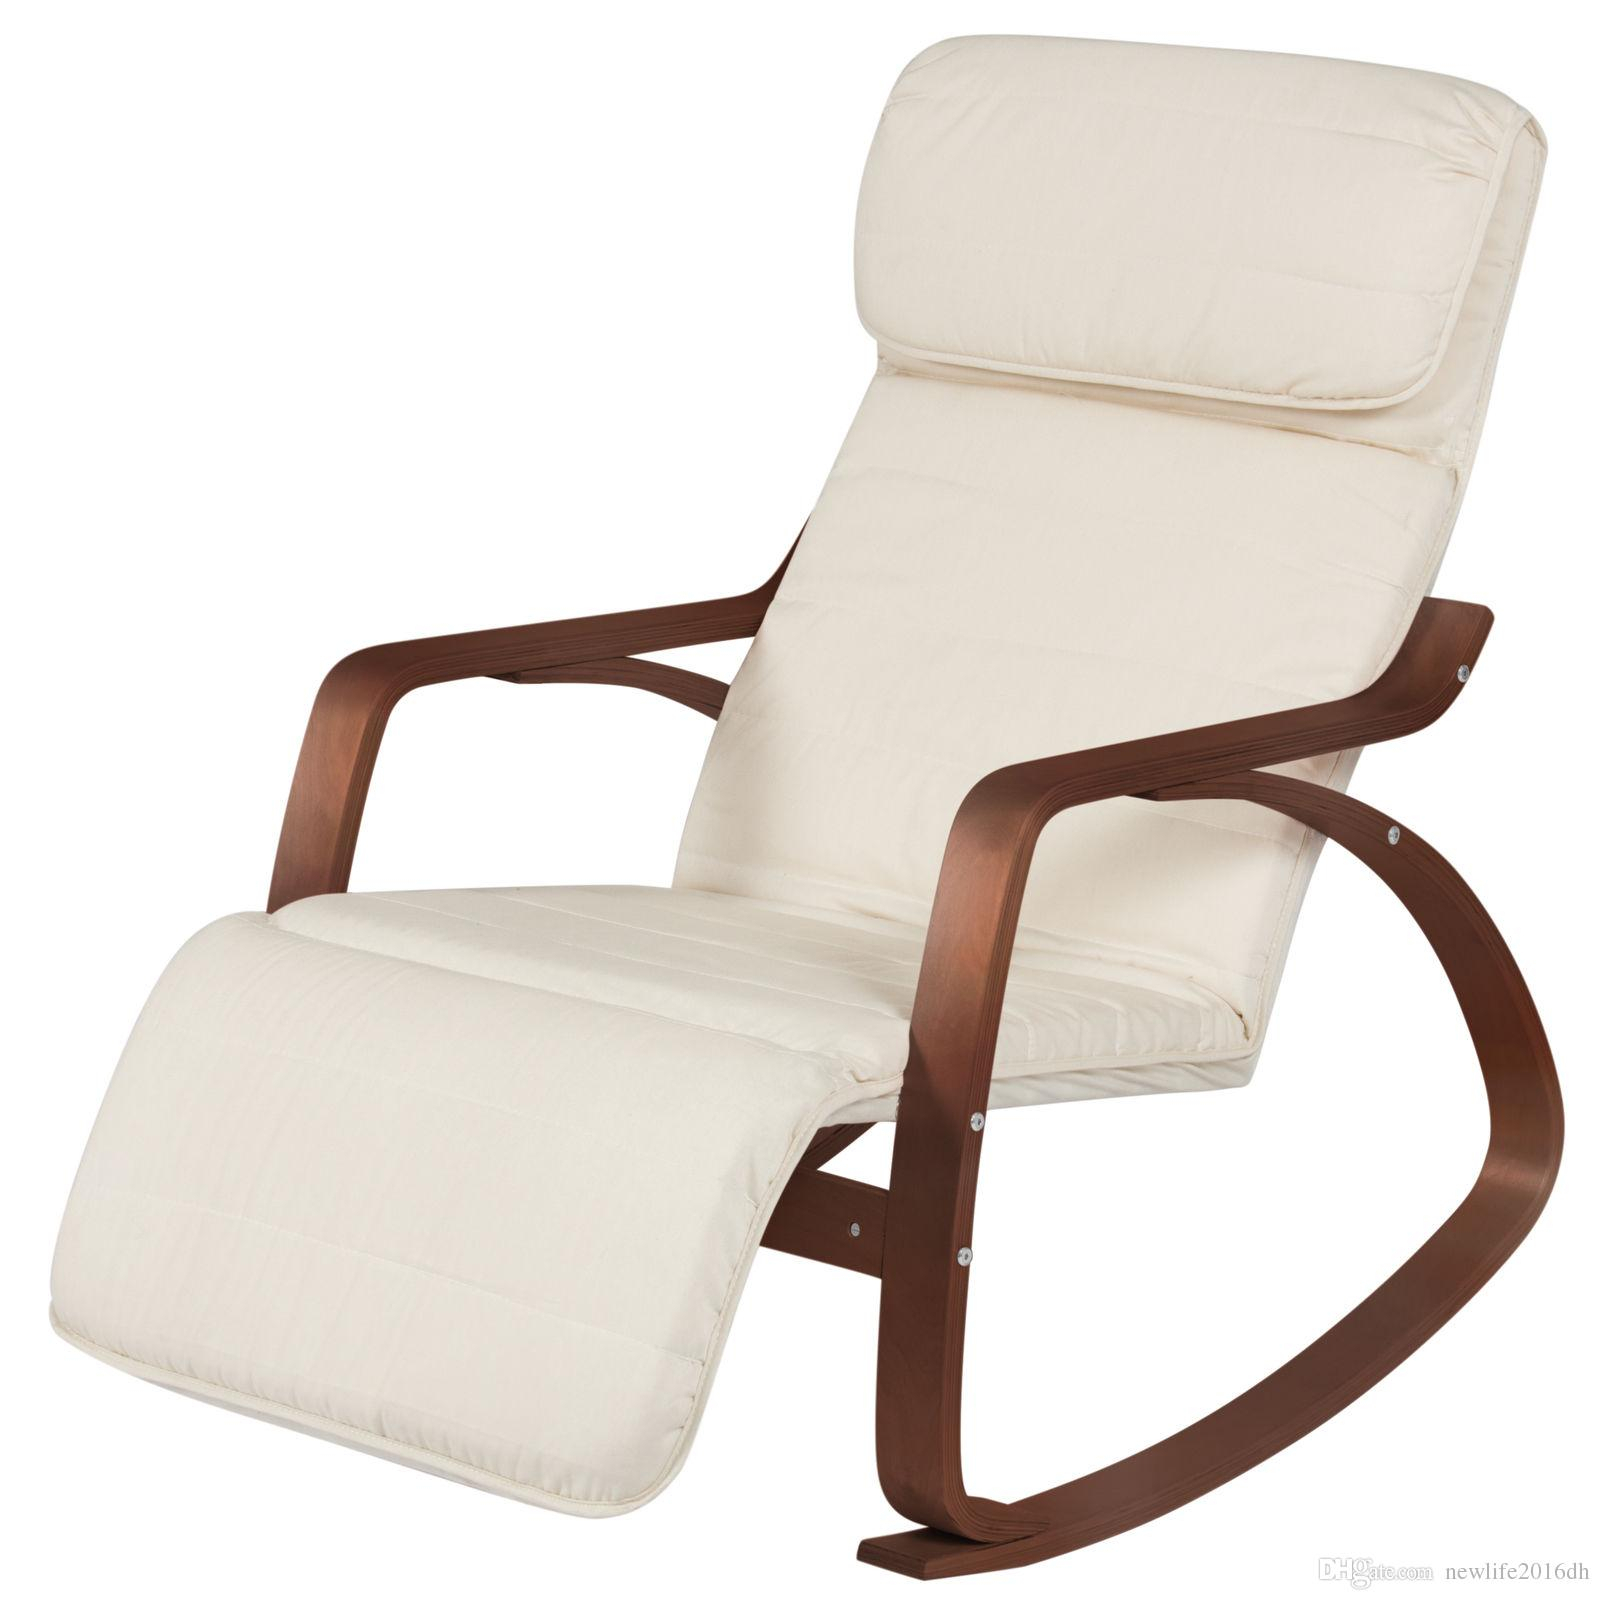 Inspiration about Wood Recliner Rocking Chair W/ Adjustable Foot Rest  White/espresso Pertaining To Espresso Brown Rocking Chairs (#10 of 20)